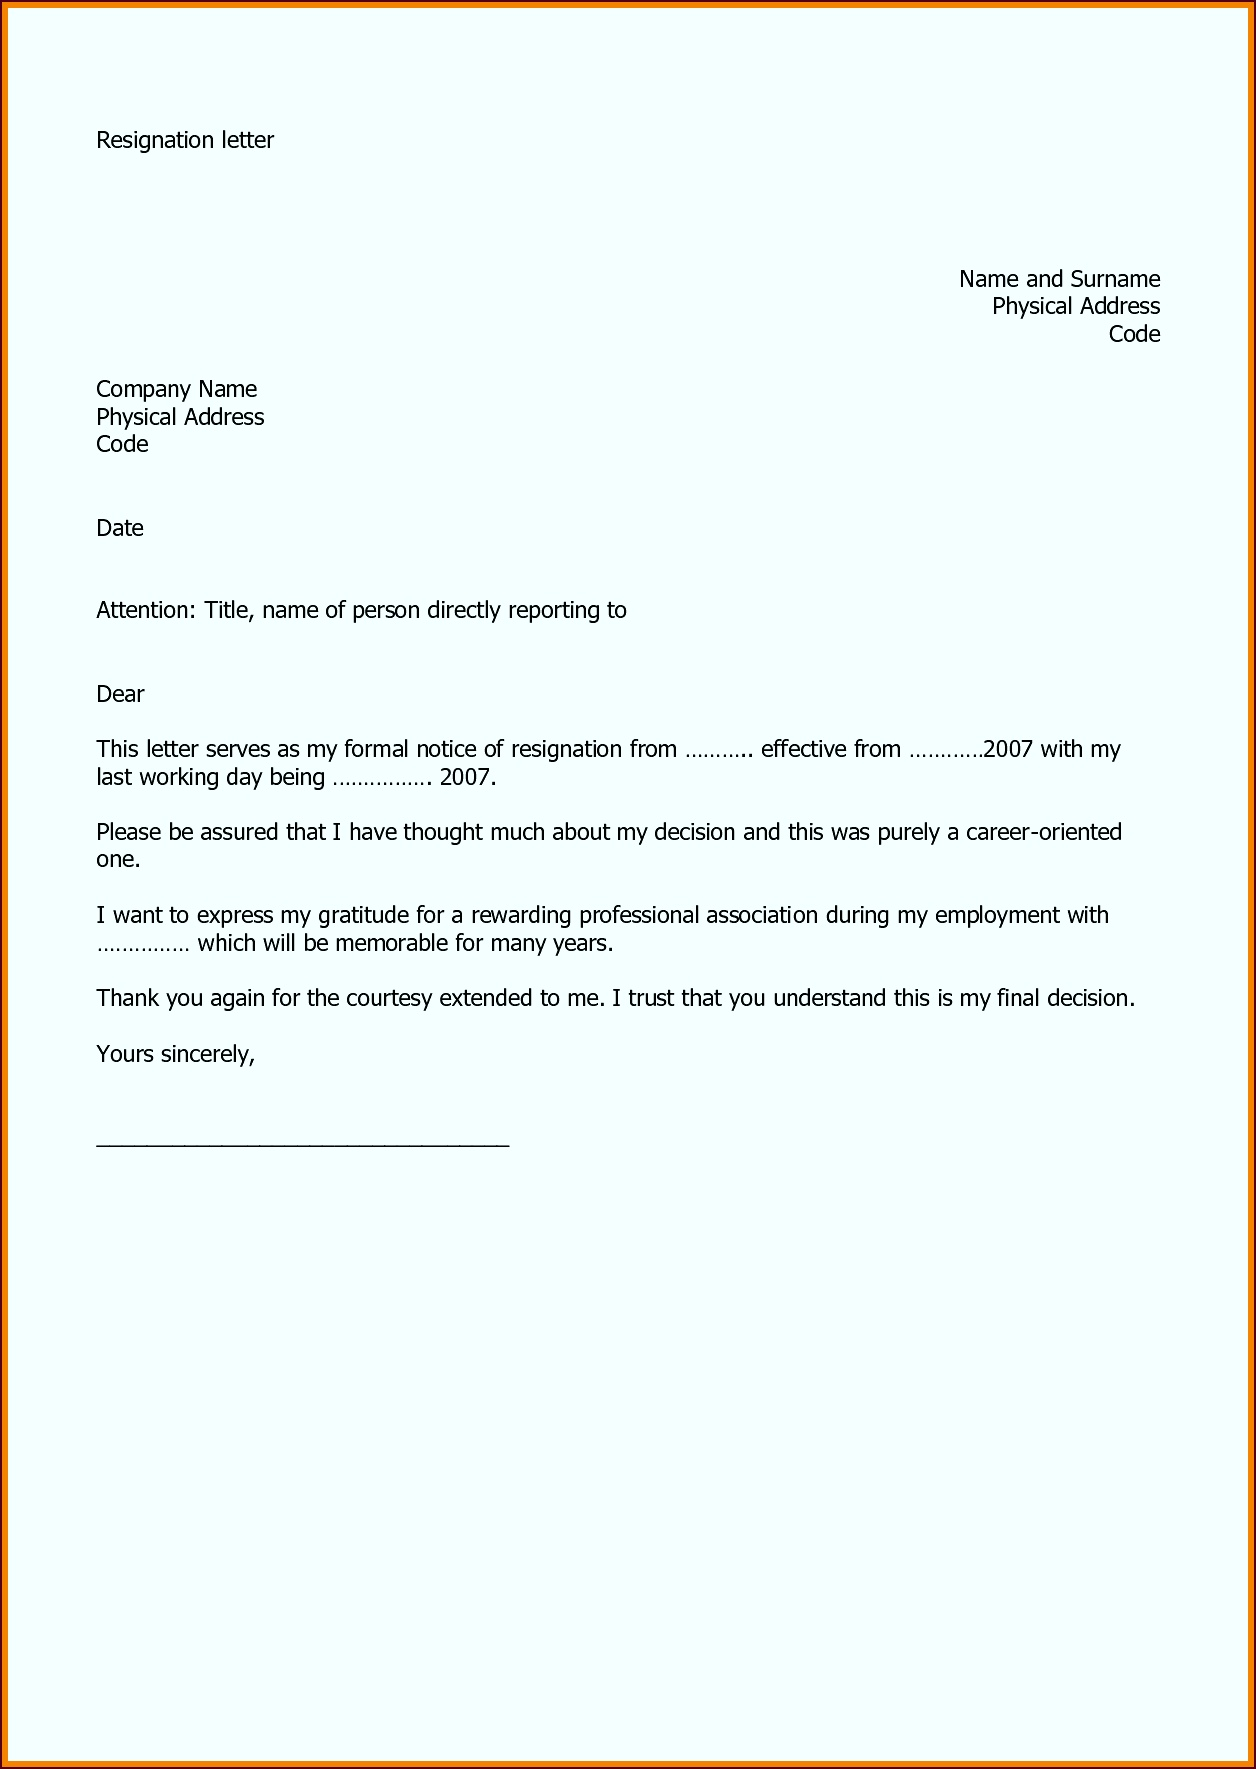 Example resignation letter two weeks notice 11 40 two weeks sample thank you letter after interview fax cover sheet yetei